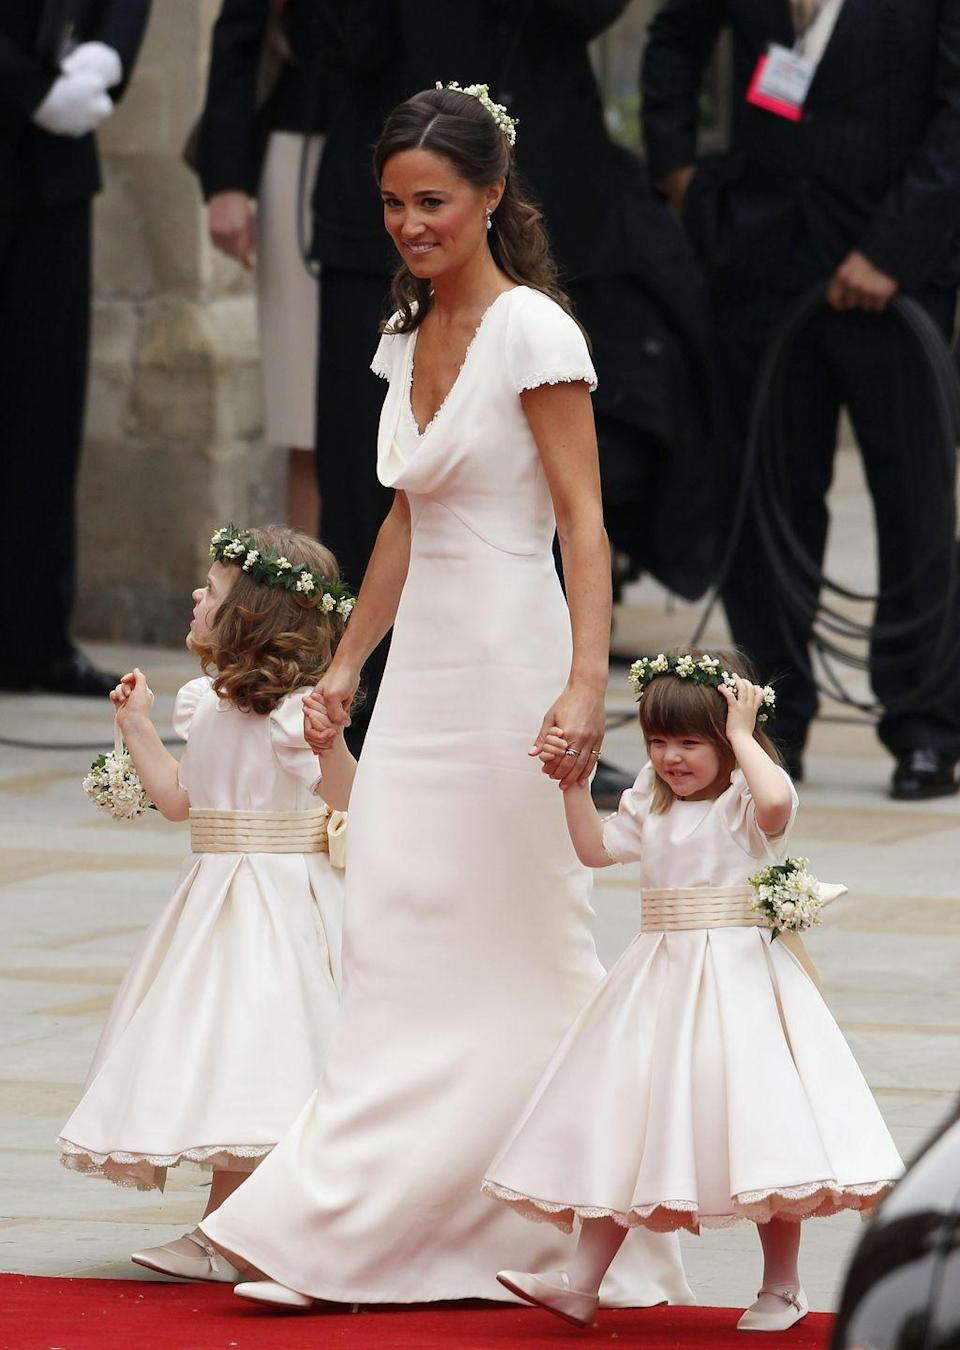 """<p>Her sister Pippa Middleton assisted with the nine-foot train and helped wrangle members of her bridal party. When <a href=""""https://www.goodhousekeeping.com/life/a20687056/pippa-middleton-husband-james-matthews/"""" rel=""""nofollow noopener"""" target=""""_blank"""" data-ylk=""""slk:Pippa married James Matthews"""" class=""""link rapid-noclick-resp"""">Pippa married James Matthews</a> last year, the Duchess of Cambridge didn't serve as hers (she reportedly didn't want to detract attention from the bride!), but she did return the favor of keeping unruly page boy Prince George and flower girl <a href=""""https://www.goodhousekeeping.com/life/a19981218/princess-charlotte-age-birth/"""" rel=""""nofollow noopener"""" target=""""_blank"""" data-ylk=""""slk:Princess Charlotte"""" class=""""link rapid-noclick-resp"""">Princess Charlotte</a> in check. </p>"""